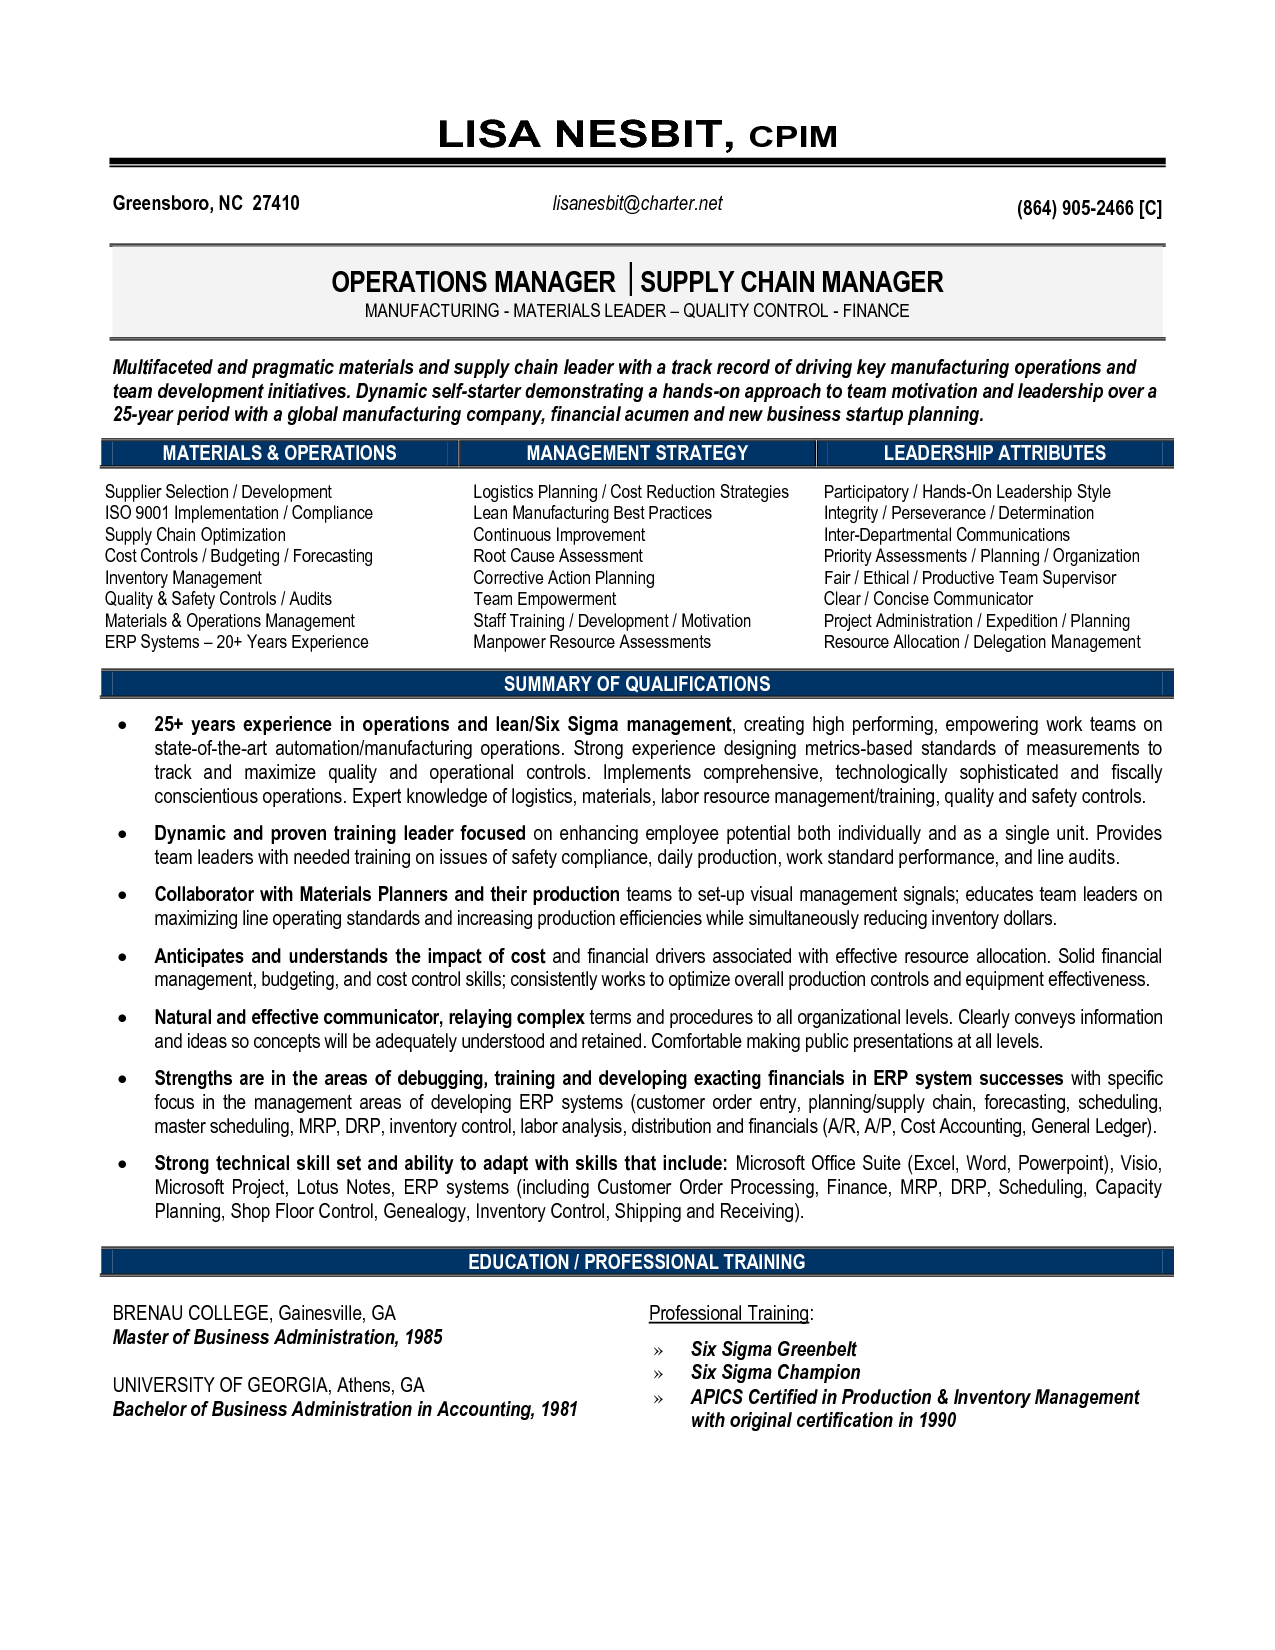 Senior Management Resume Templates Senior Logistic Management Resume Senior Manager Supply